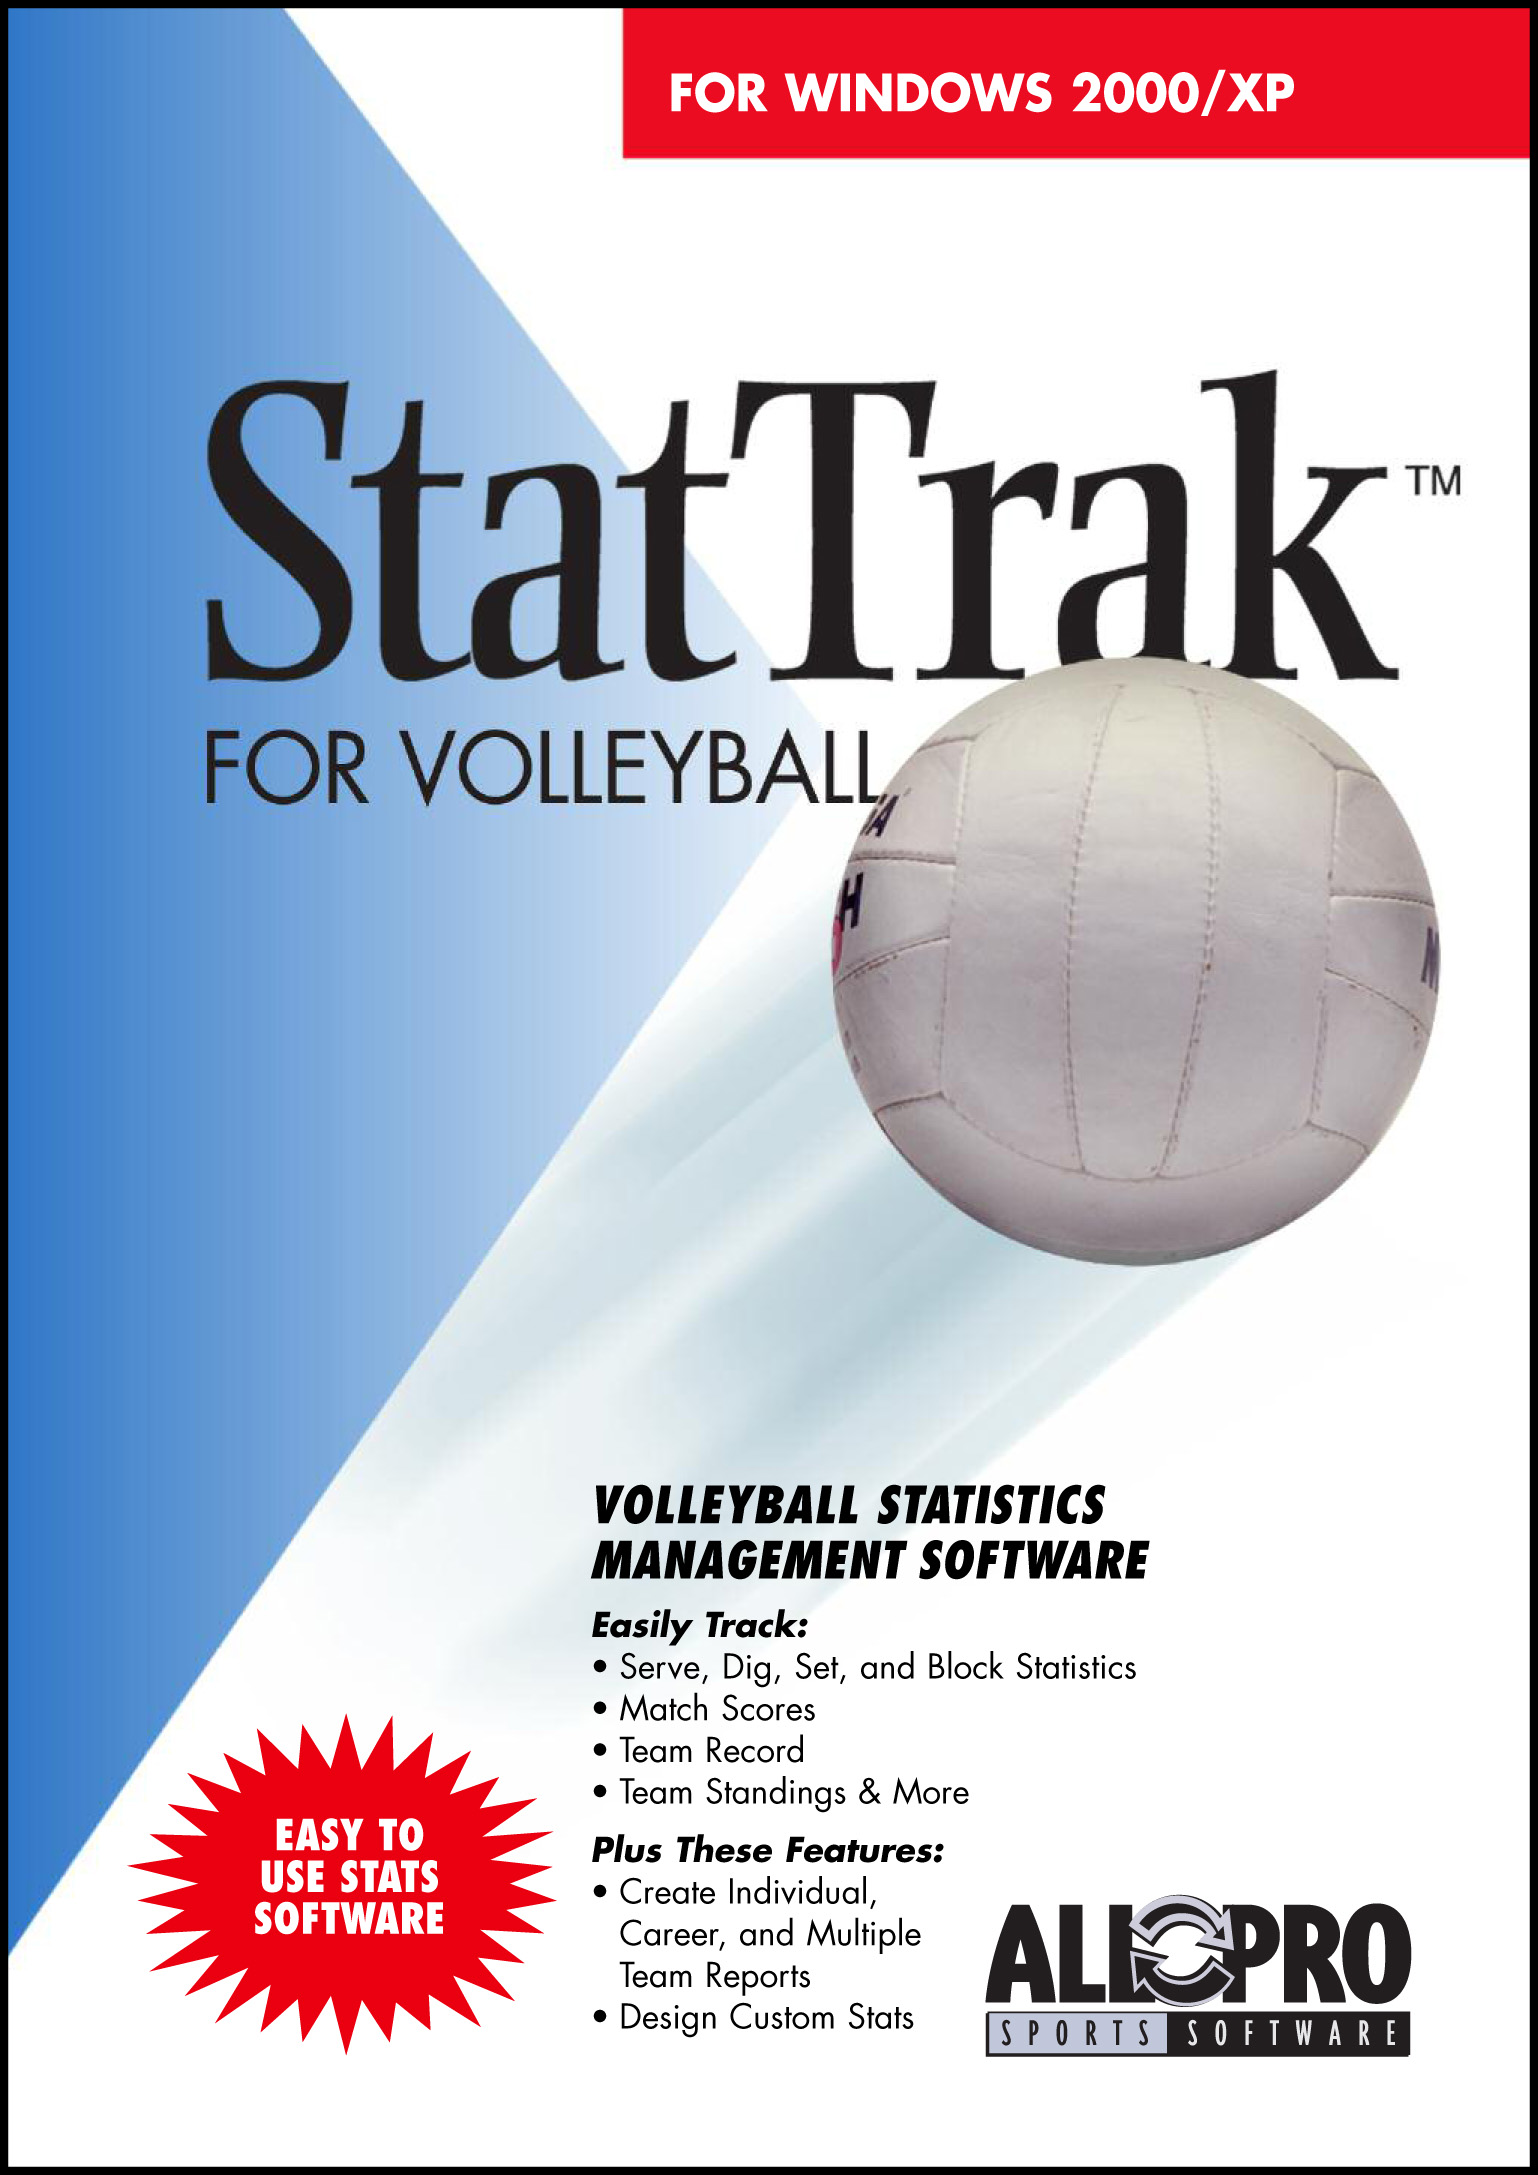 StatTrak for Volleyball screen shot